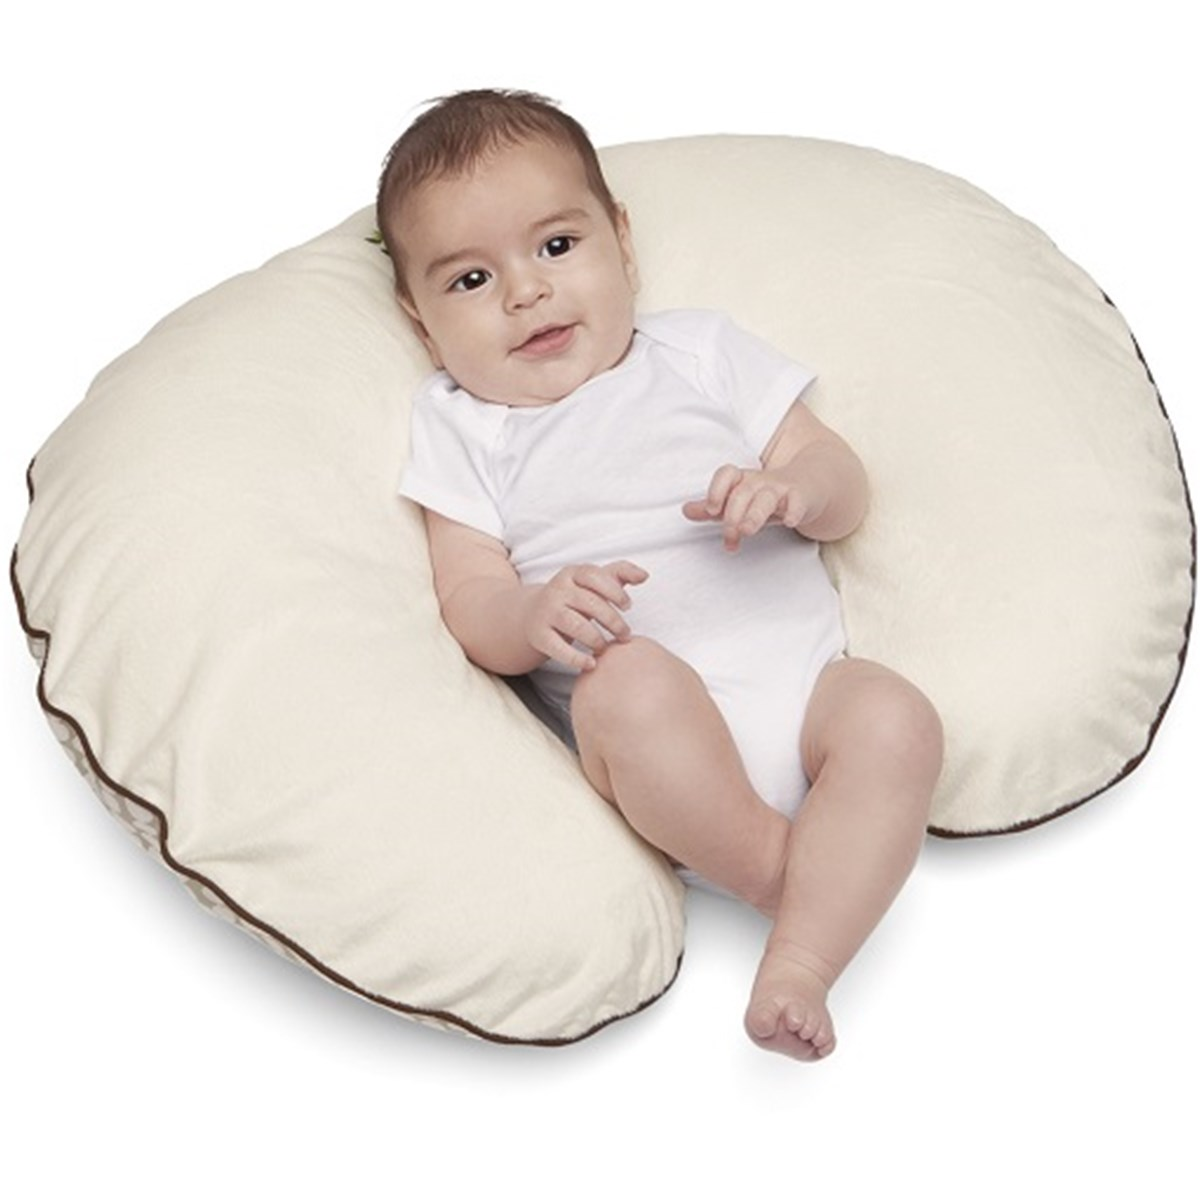 boppy baby chair green marbles dental upholstery feeding and infant support pillow